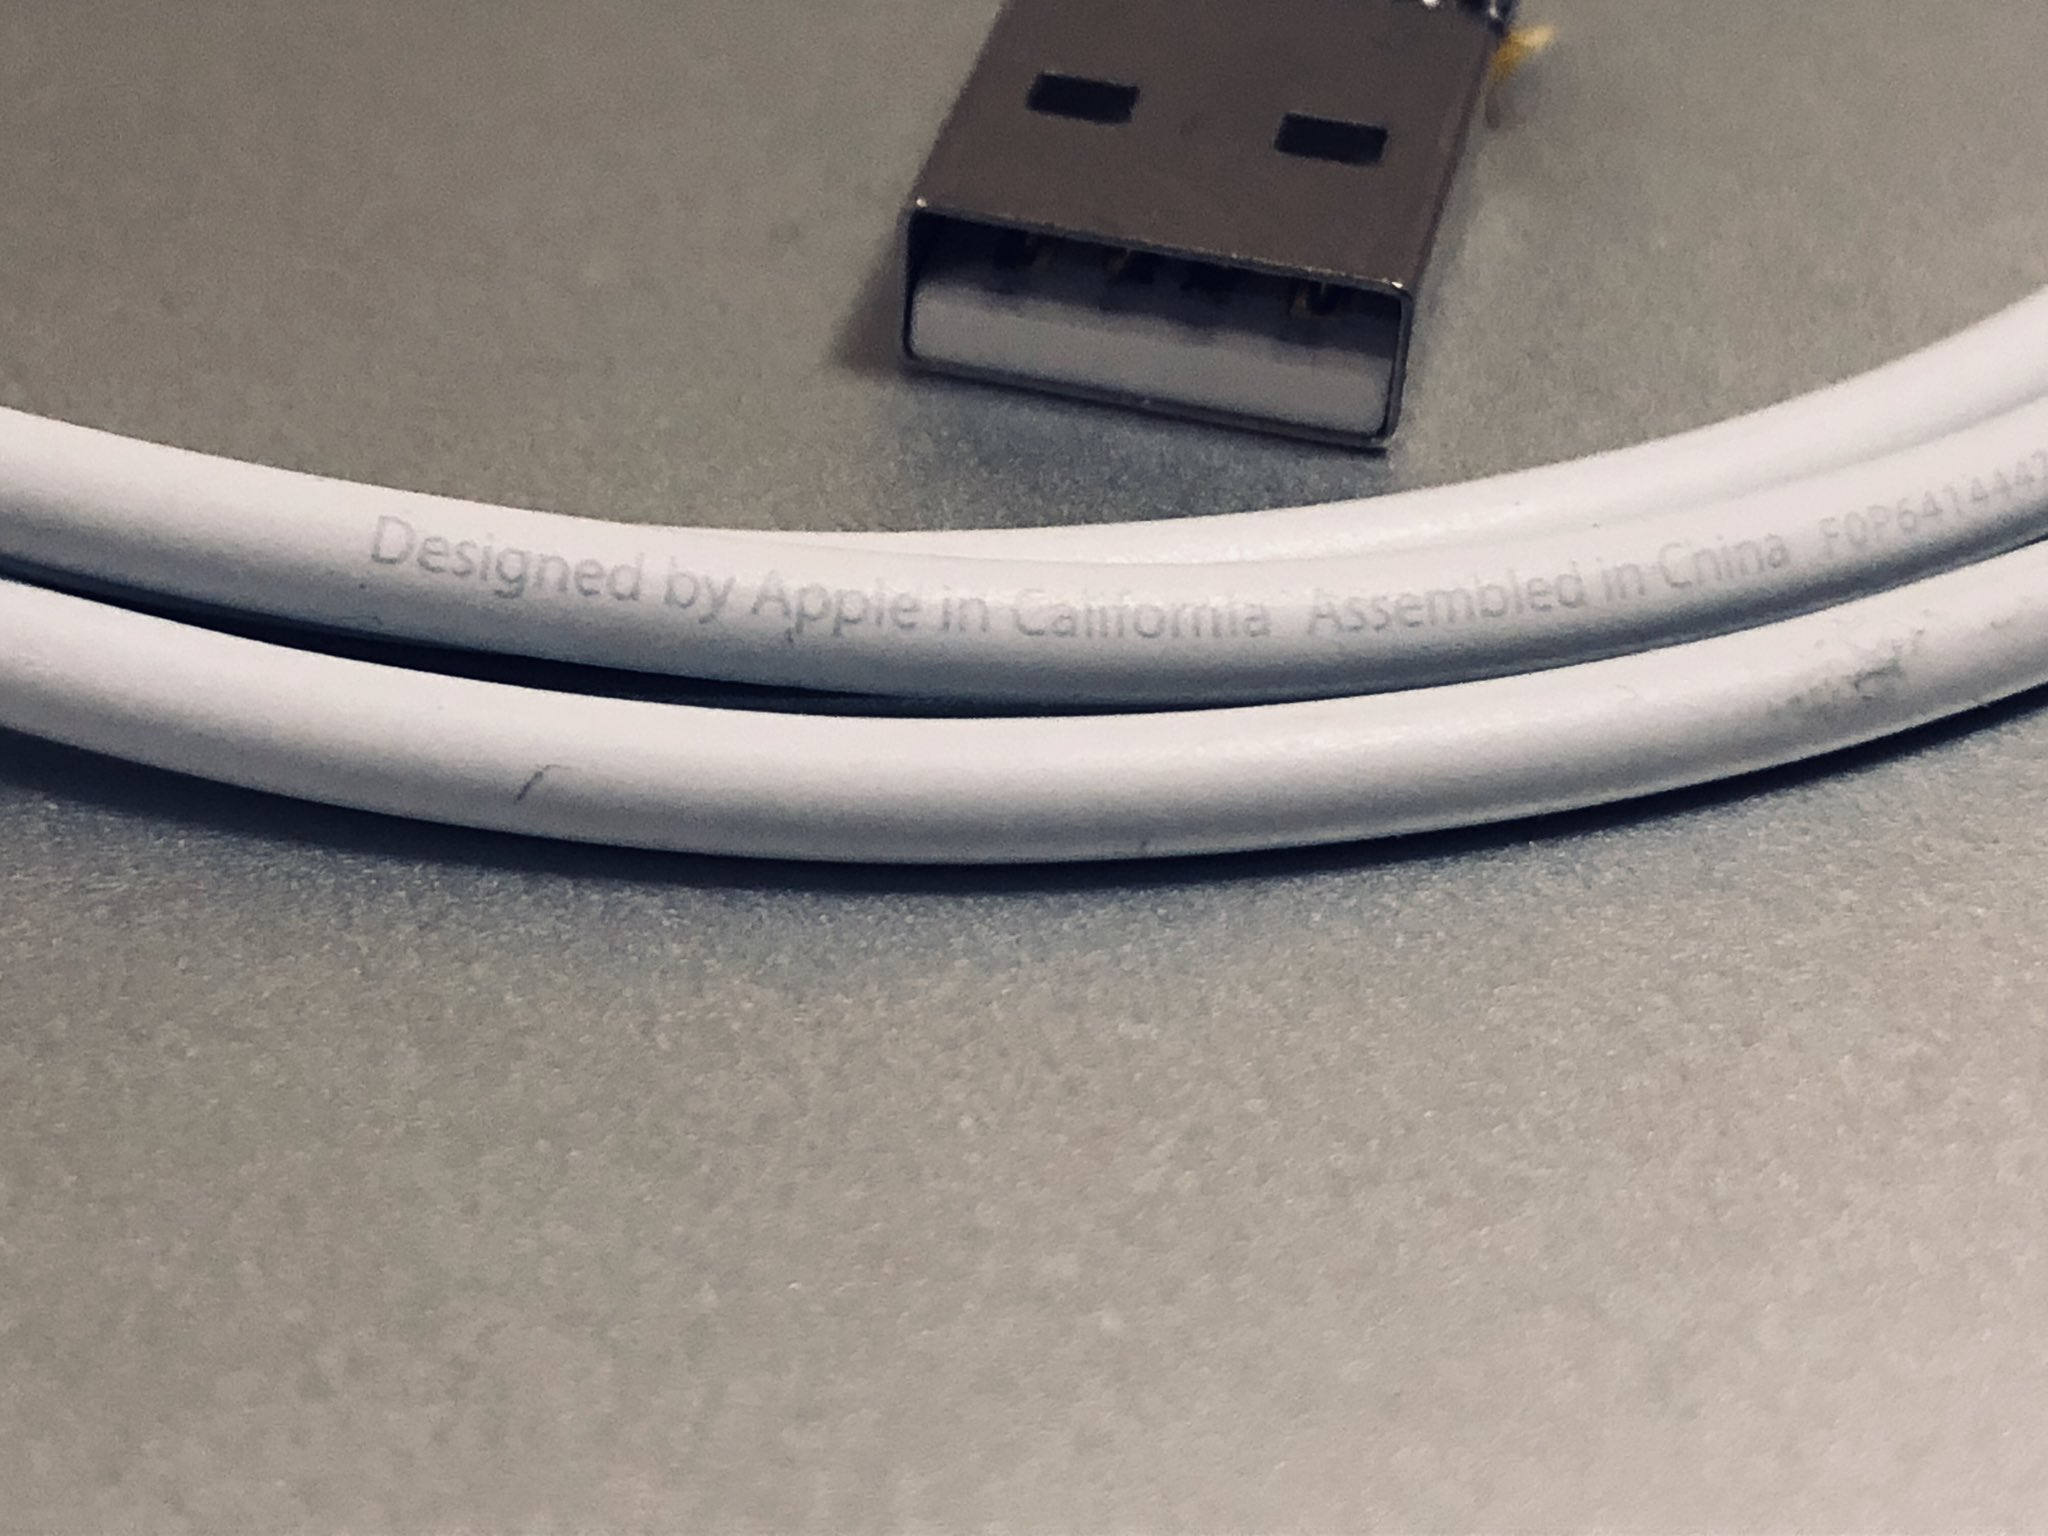 A malicious USB cable with its own wifi rig